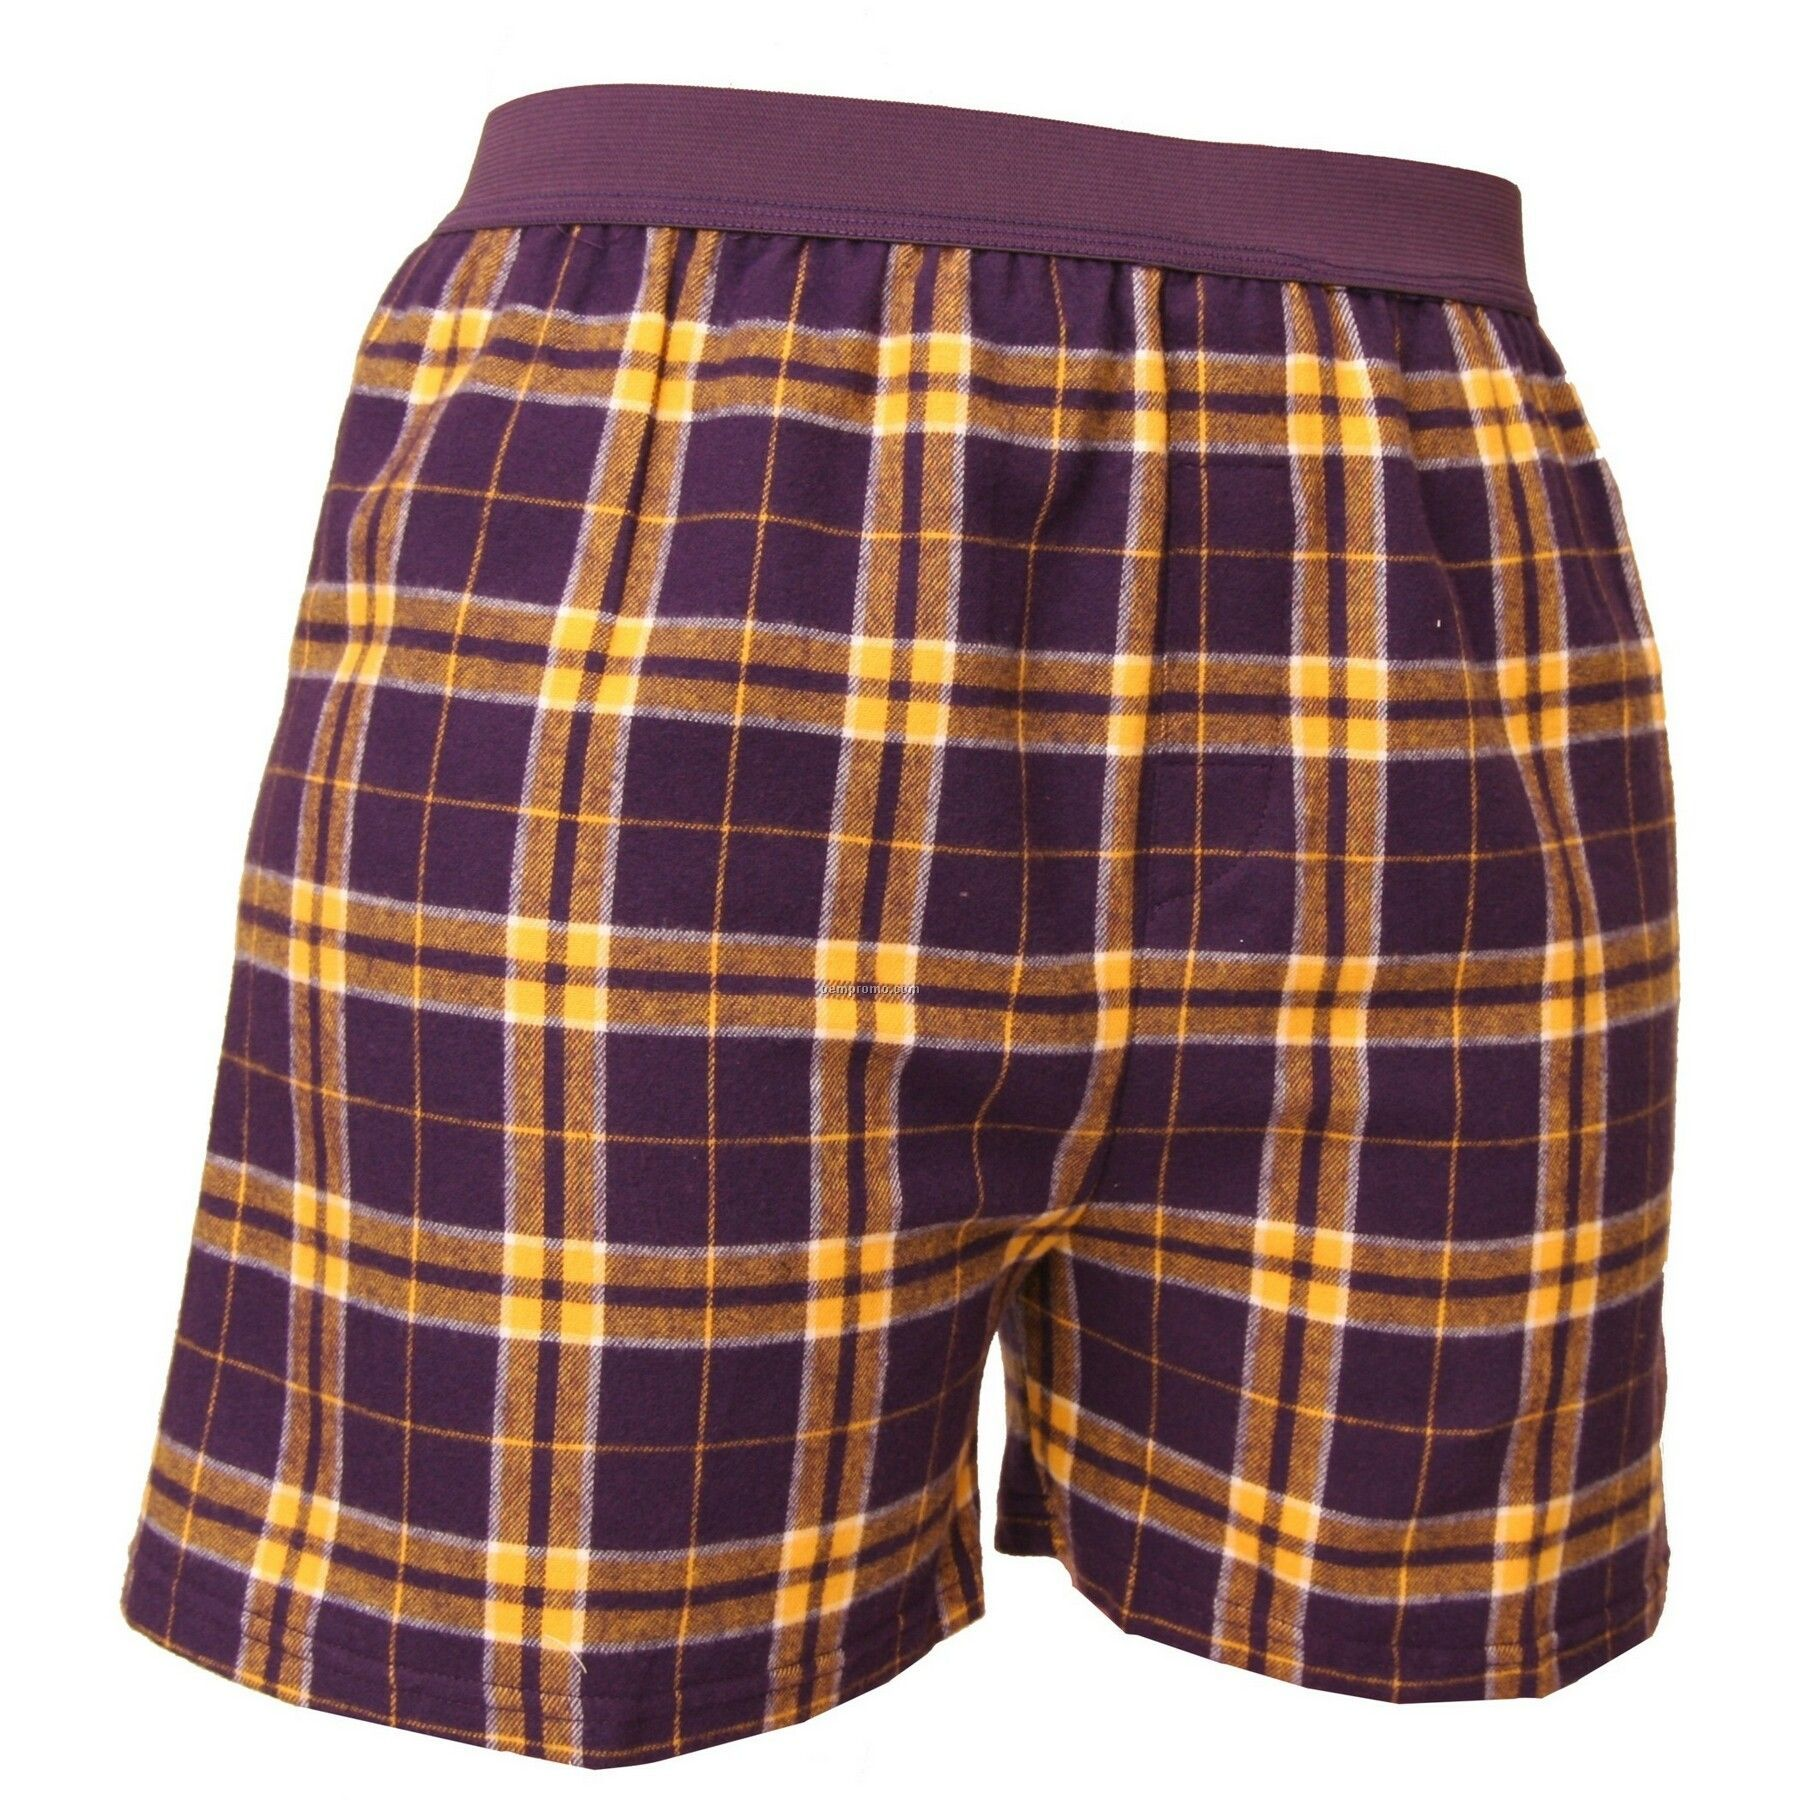 Youth Purple/Gold Plaid Classic Boxer Short